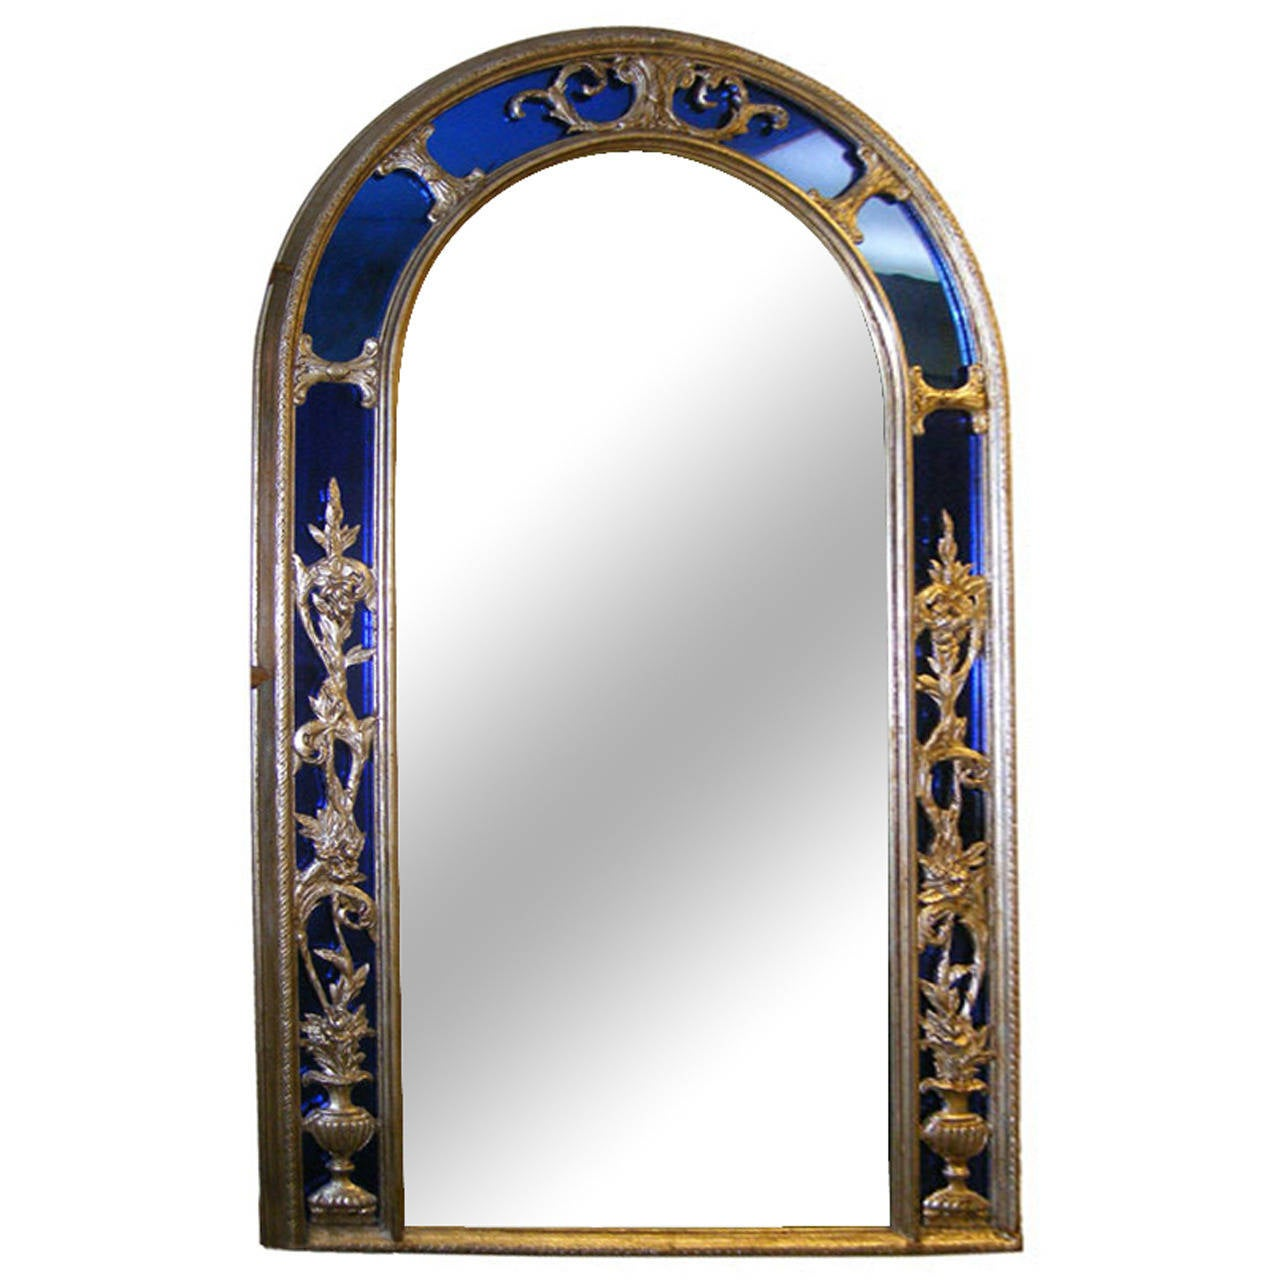 Silver Plated Mirror with Cobalt Blue Frame